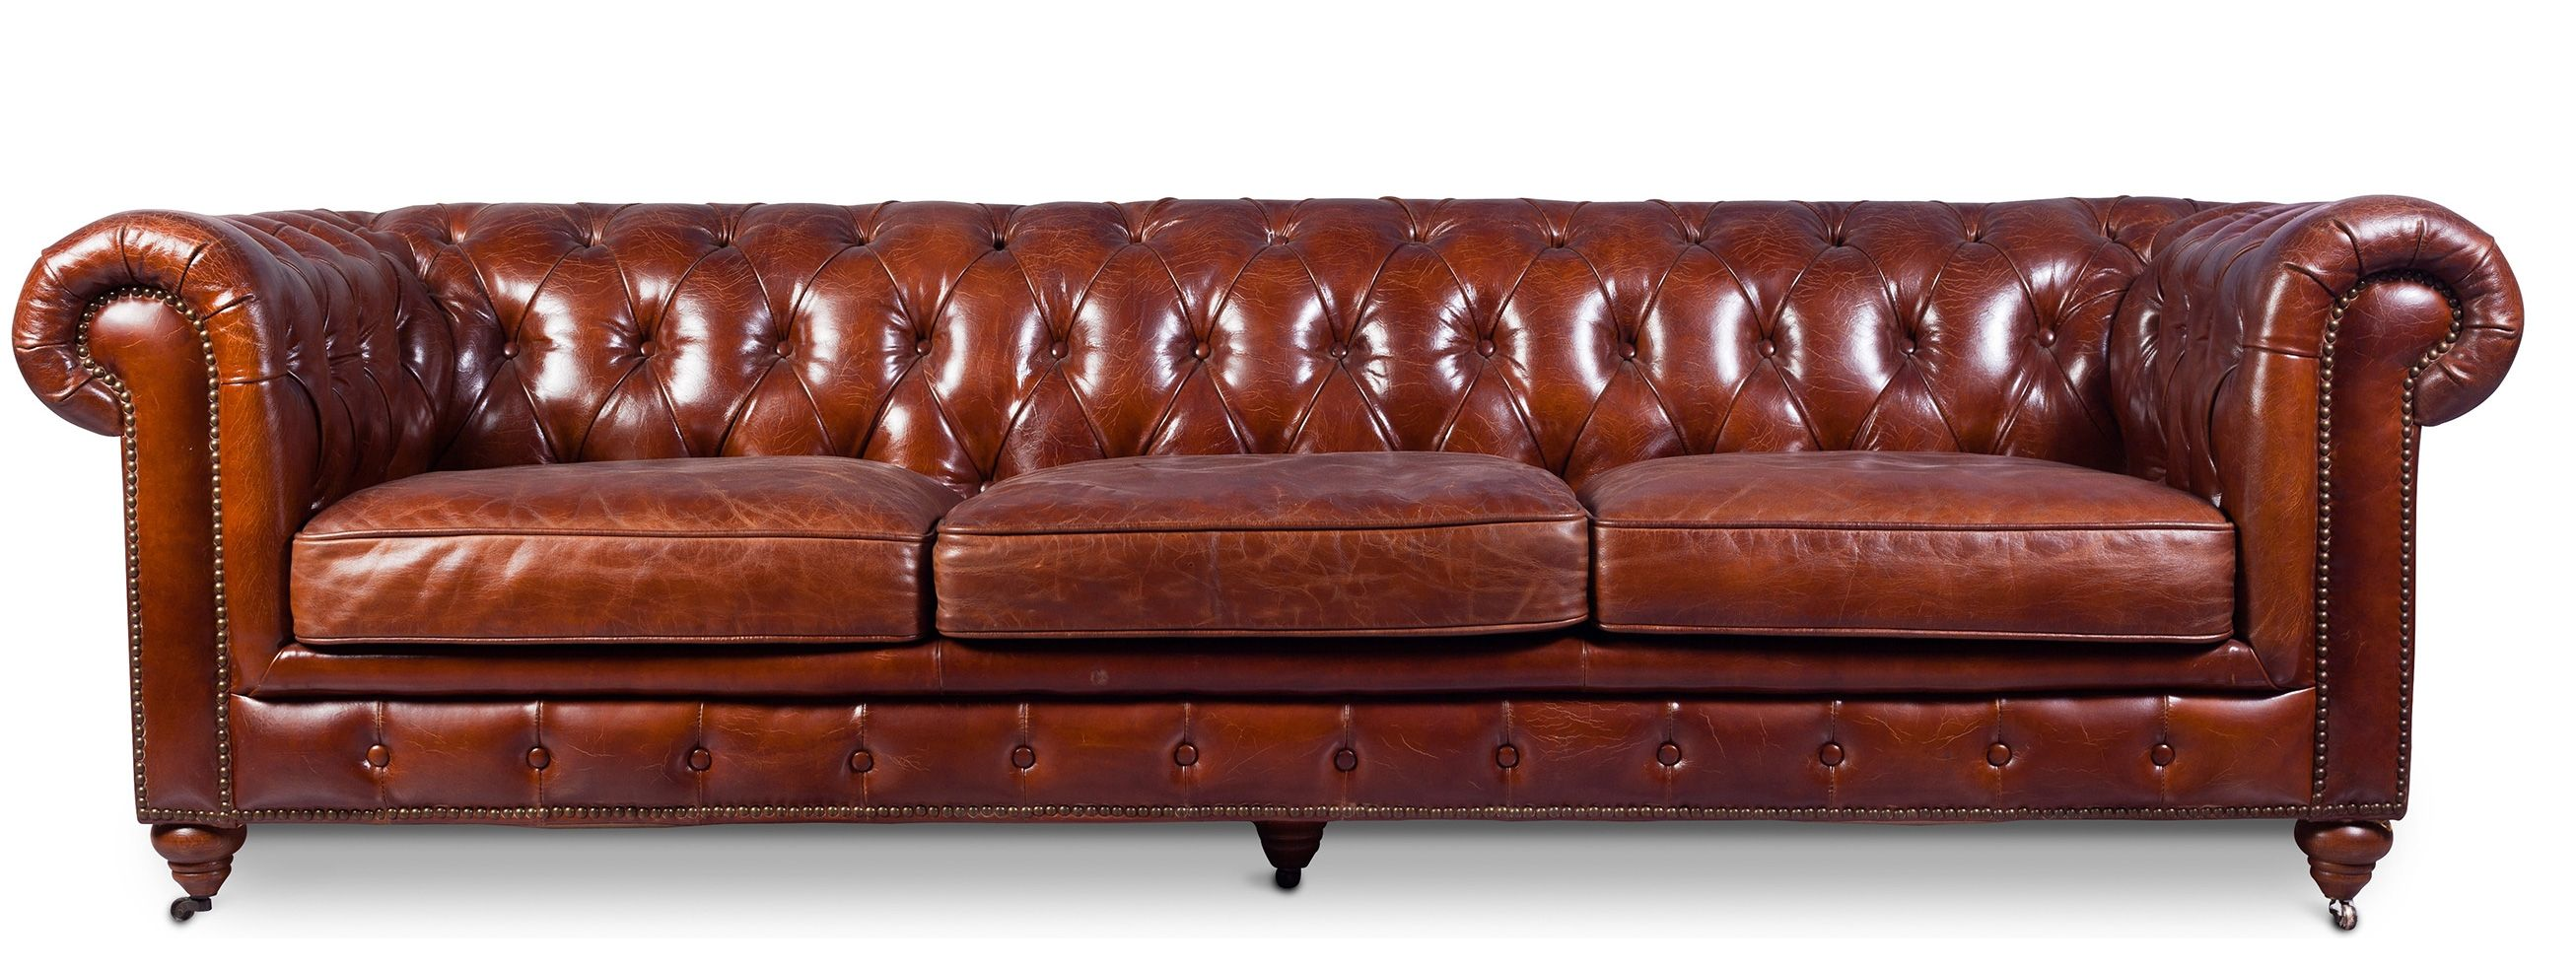 Canap 4 places cuir marron clair chesterfield lower canap cuir vintage pinterest canap for Canape 4 place